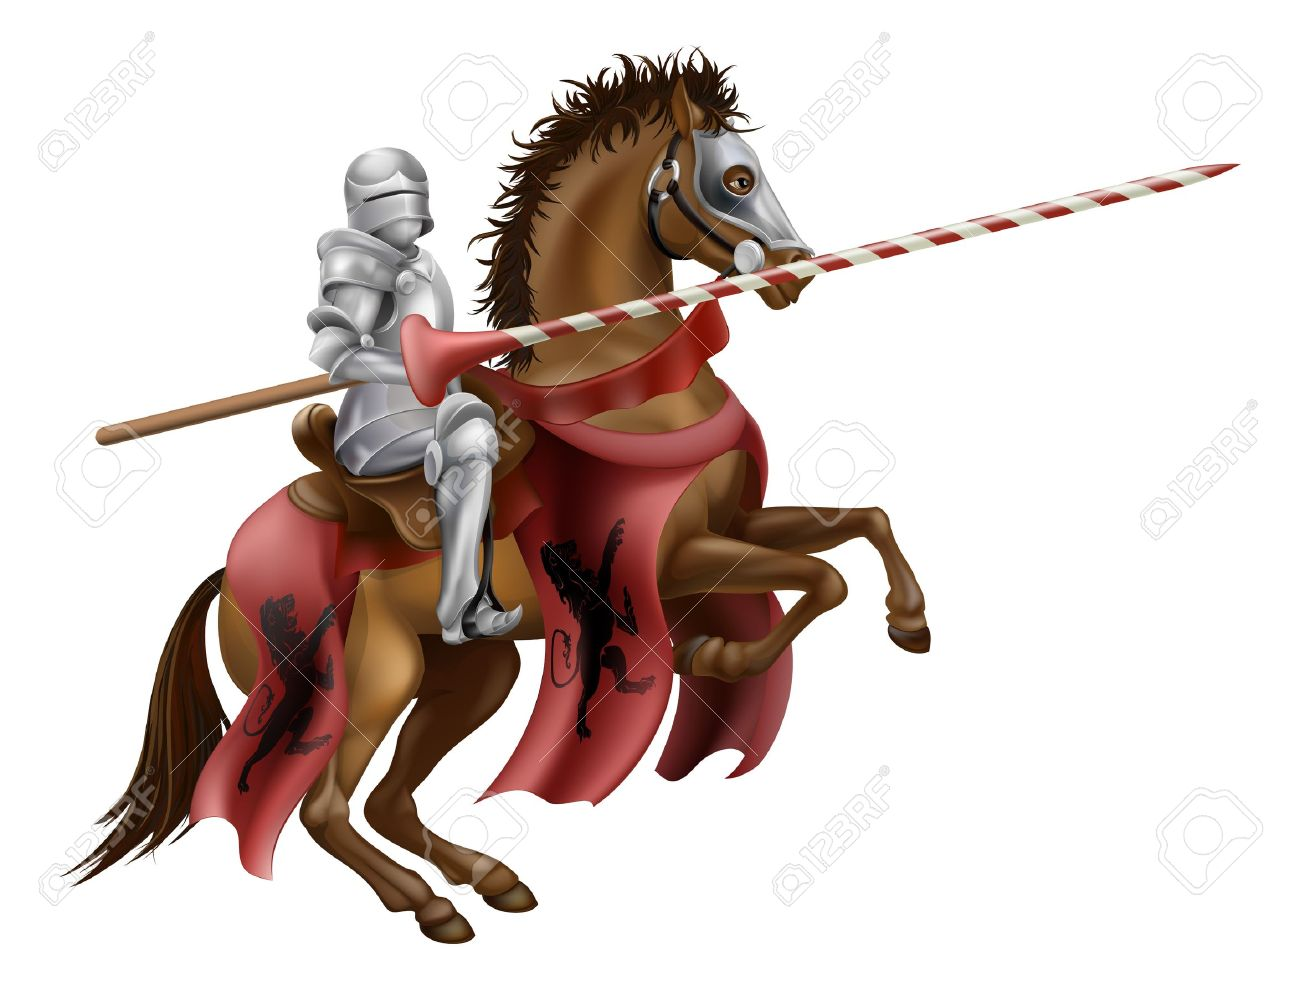 27,048 Knight Stock Vector Illustration And Royalty Free Knight.